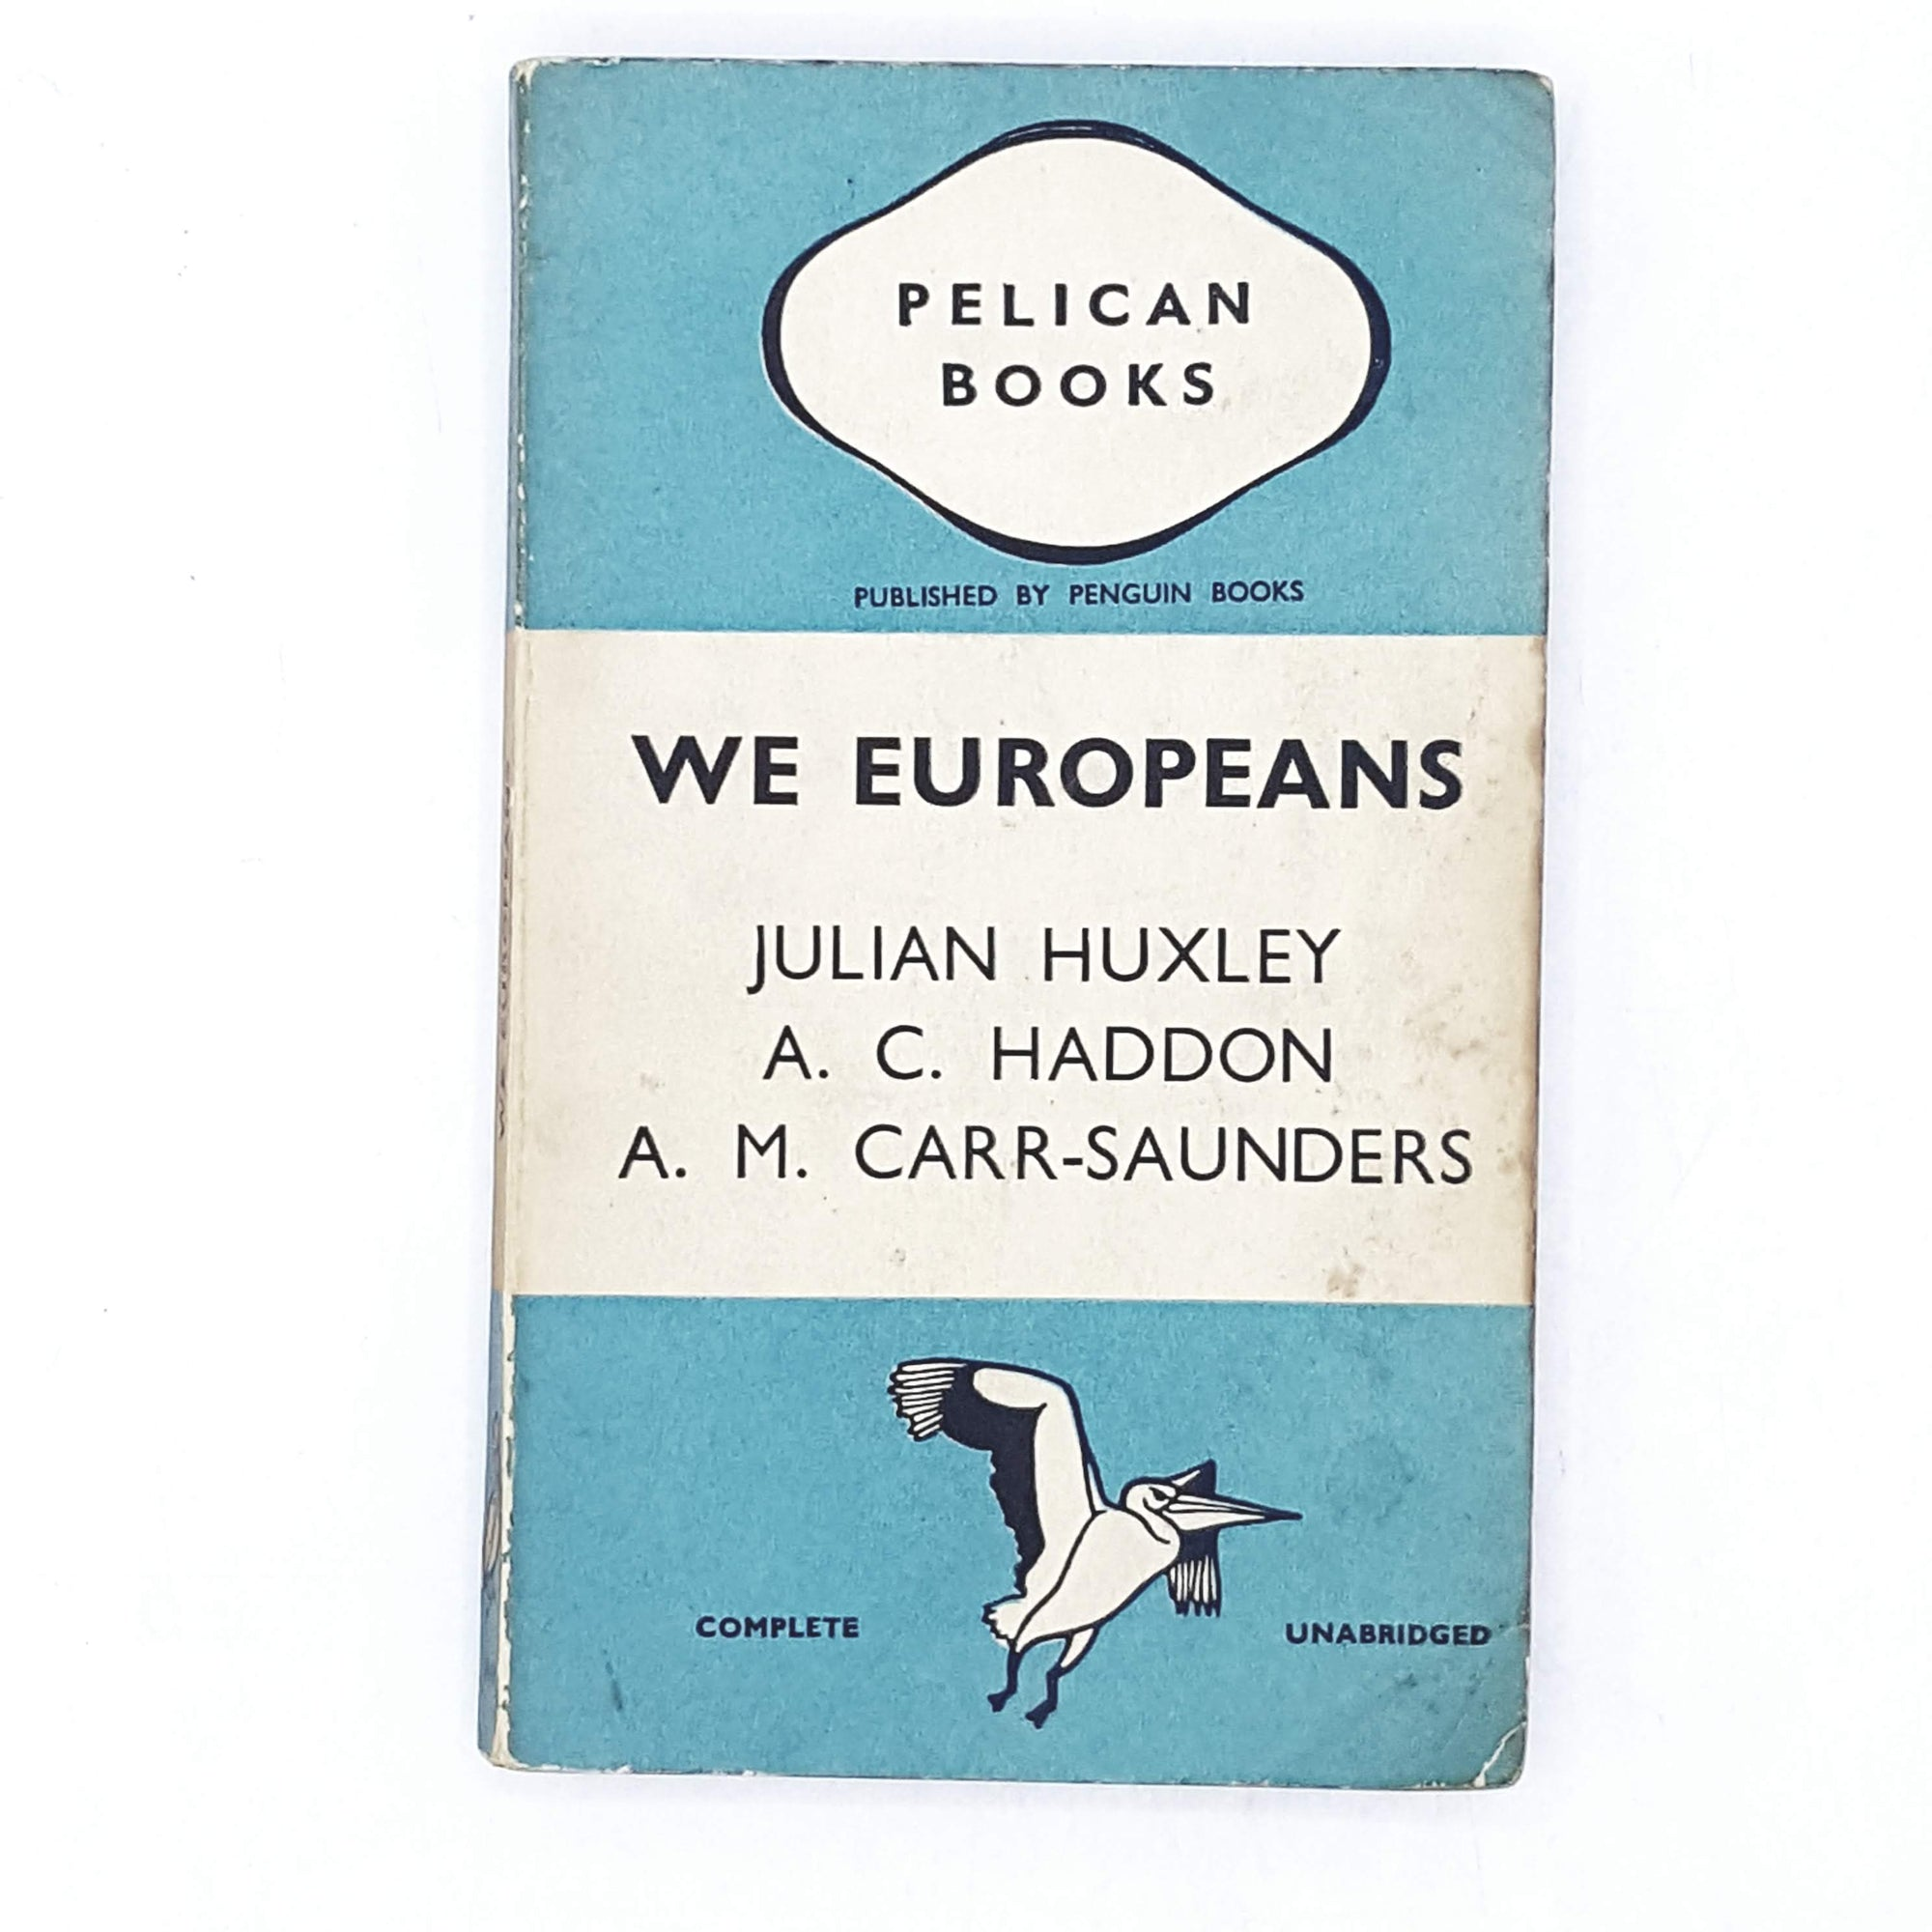 We Europeans by Julian Huxlery 1939